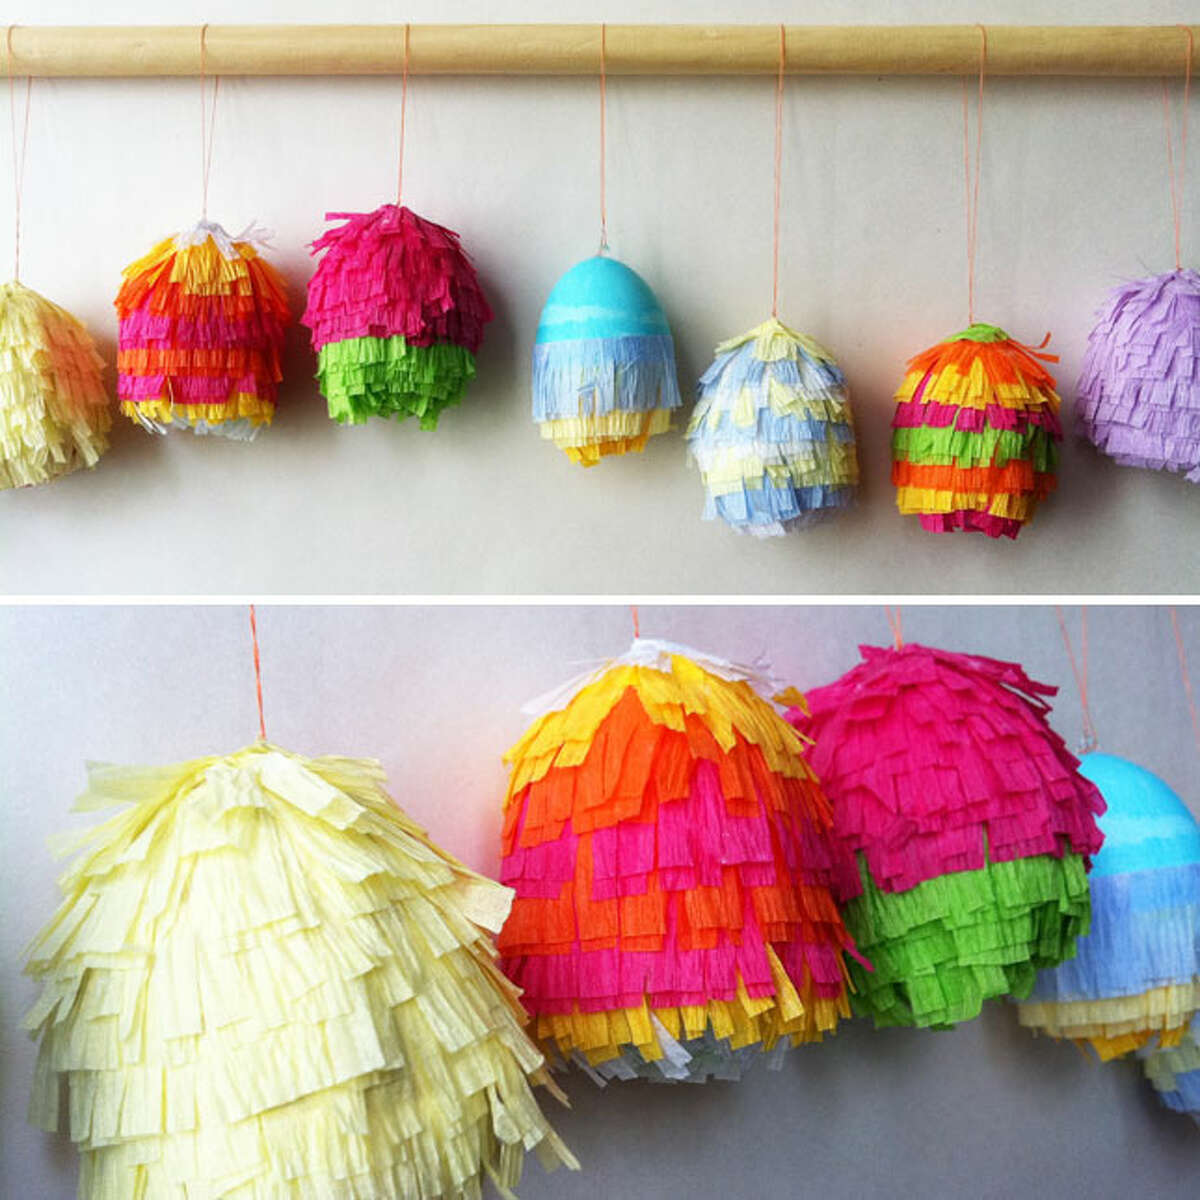 It's like an Easter fiesta! Decorating Easter eggs has been taken to the next level. Just look at these eggs from Corner Blog.